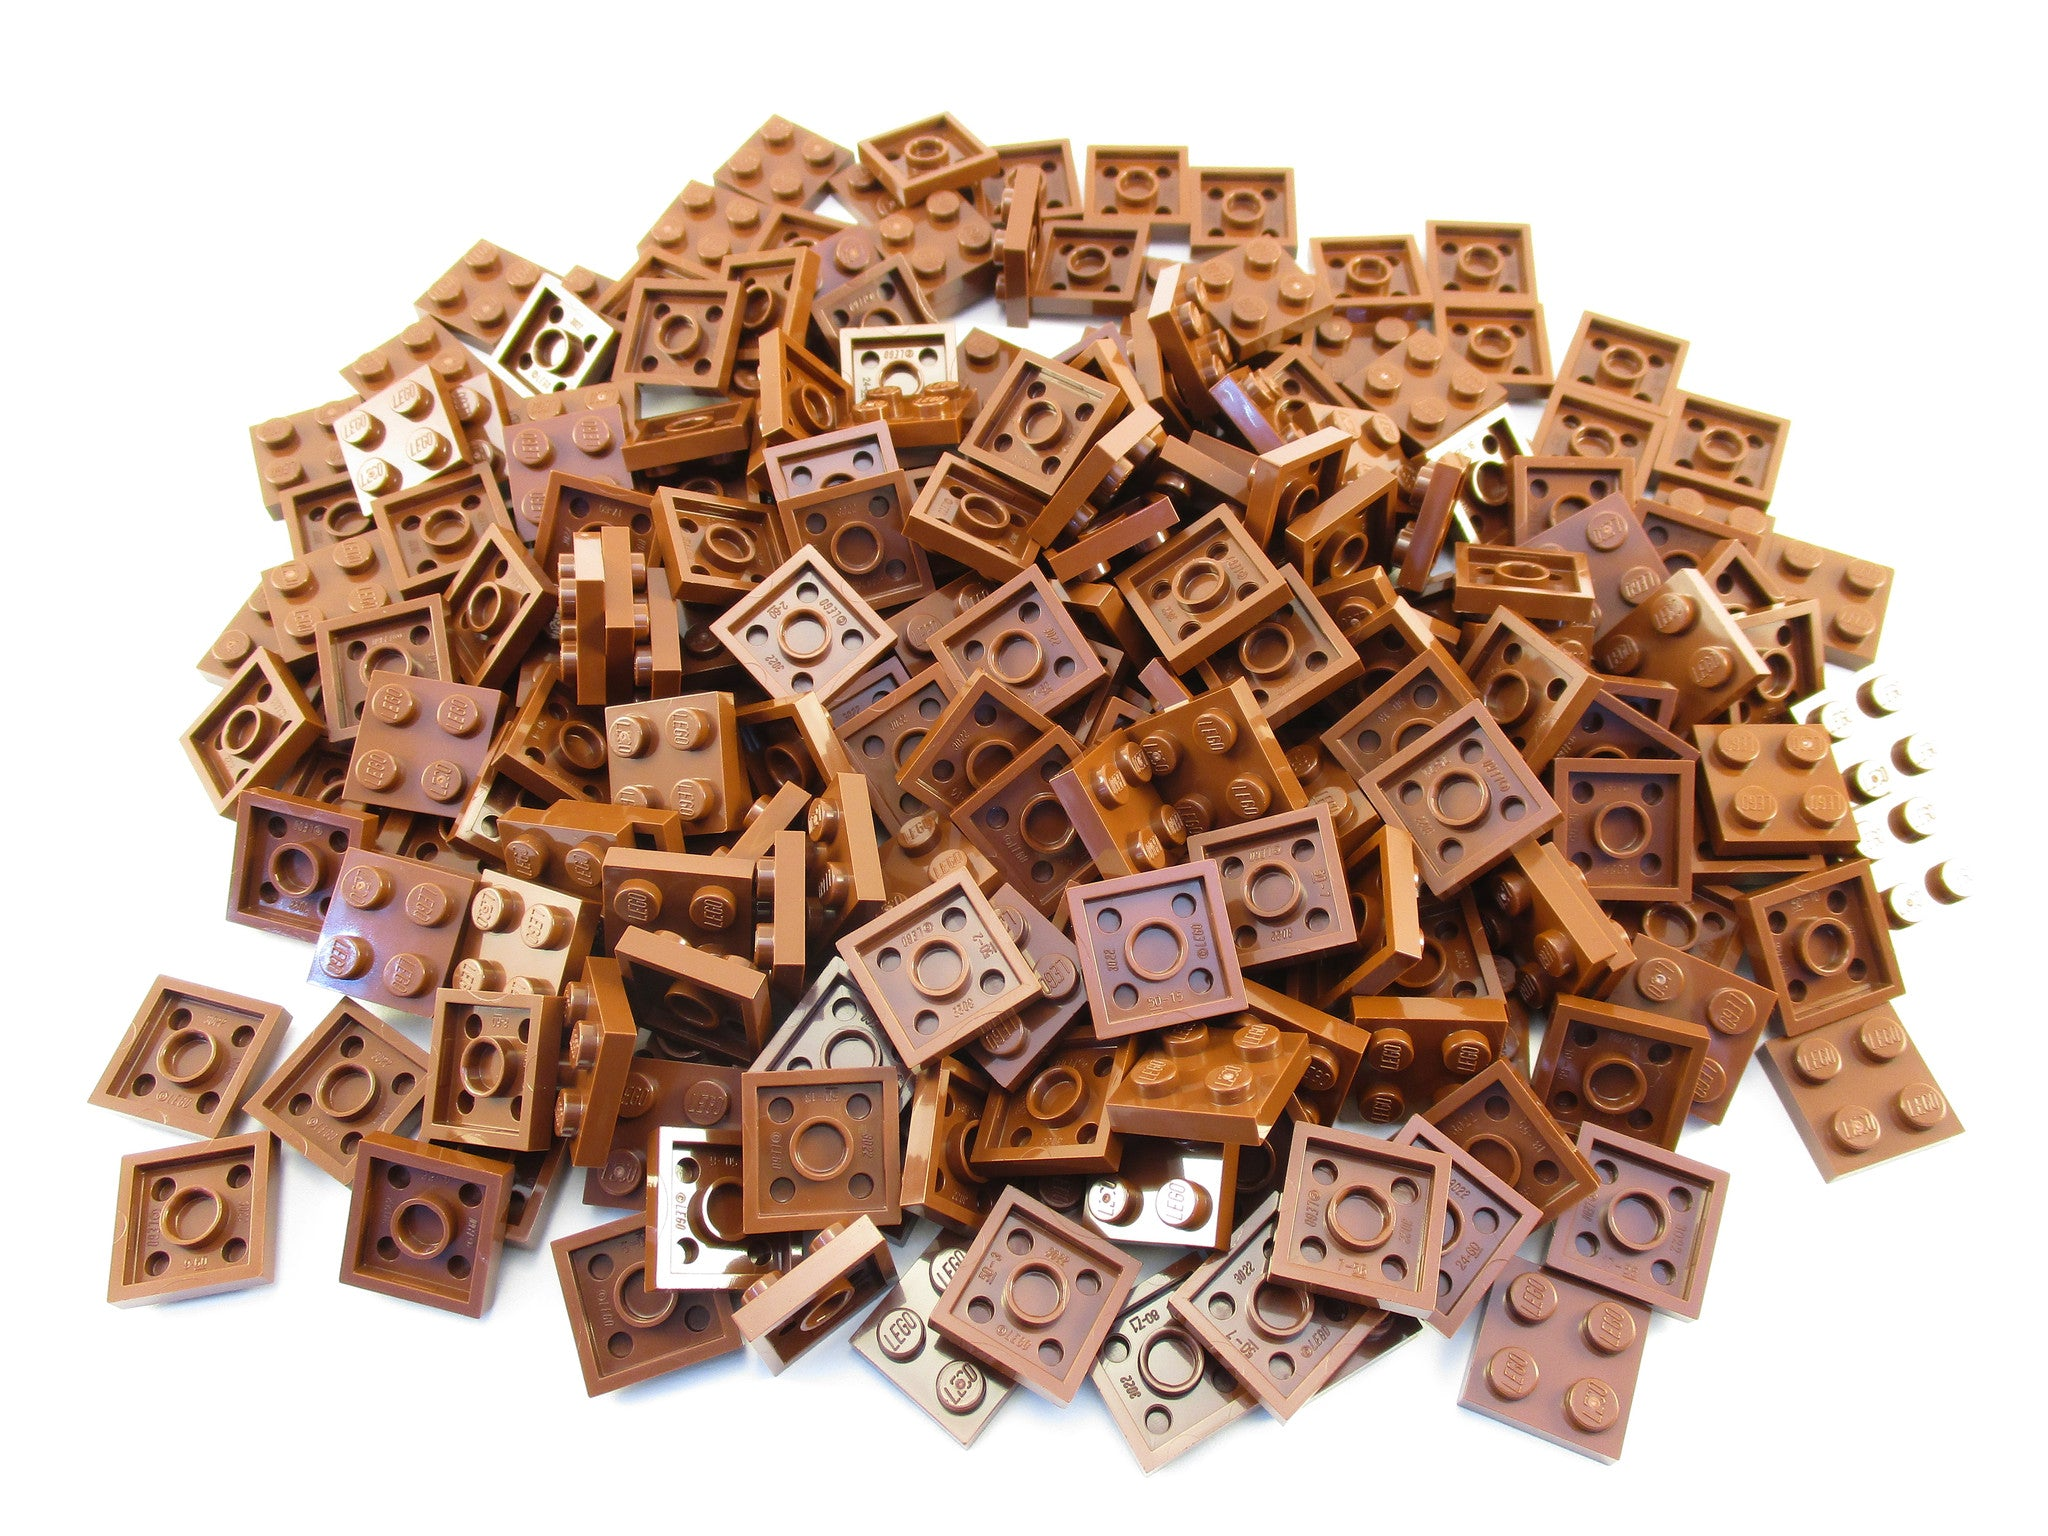 LEGO Reddish Brown Plate 2x2 Lot of 100 Parts Pieces 3022